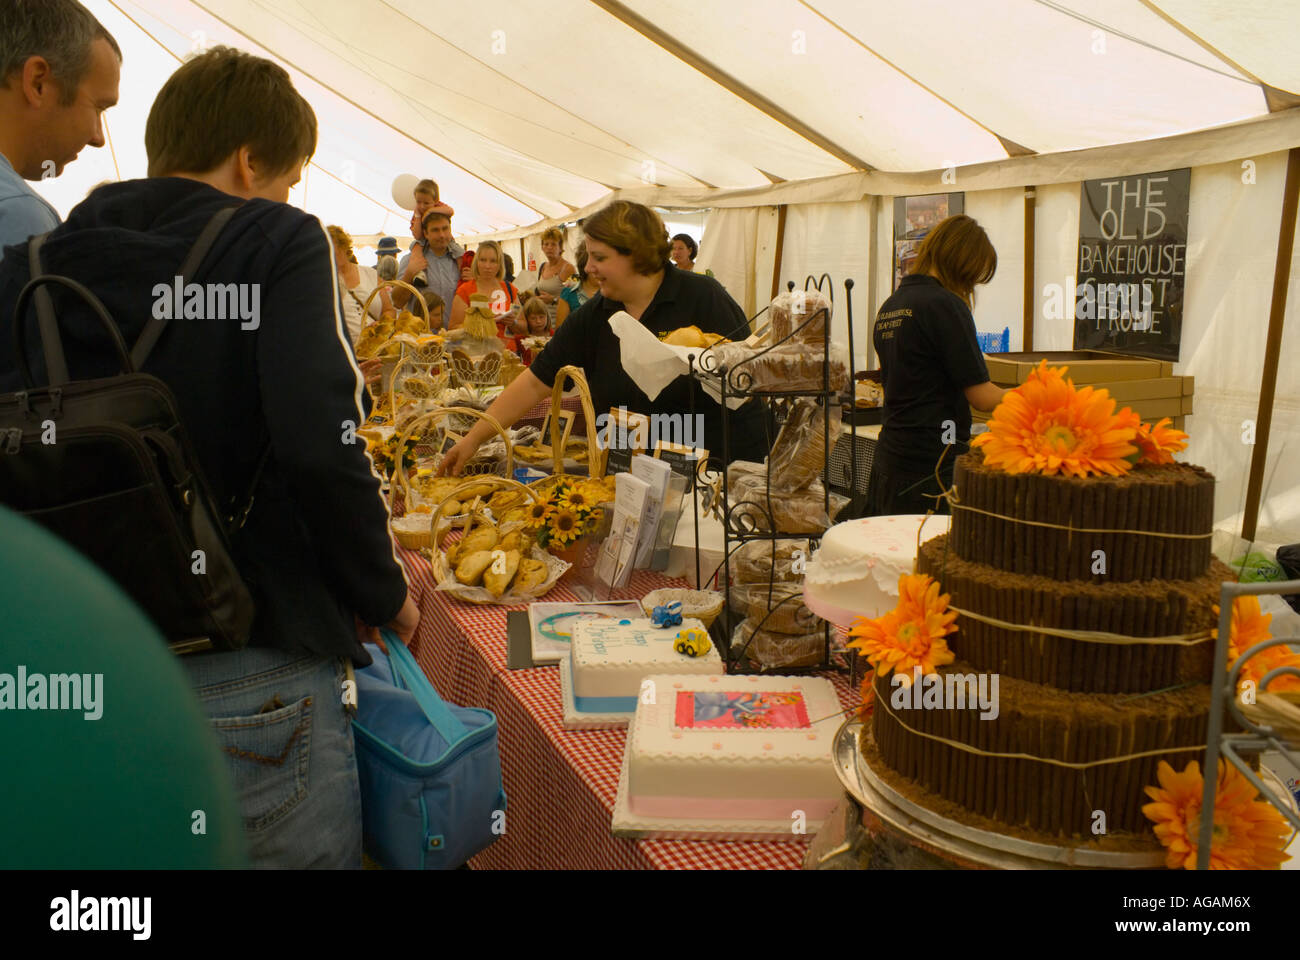 The Old Bakehouse stand at the Frome Cheese Show - Stock Image